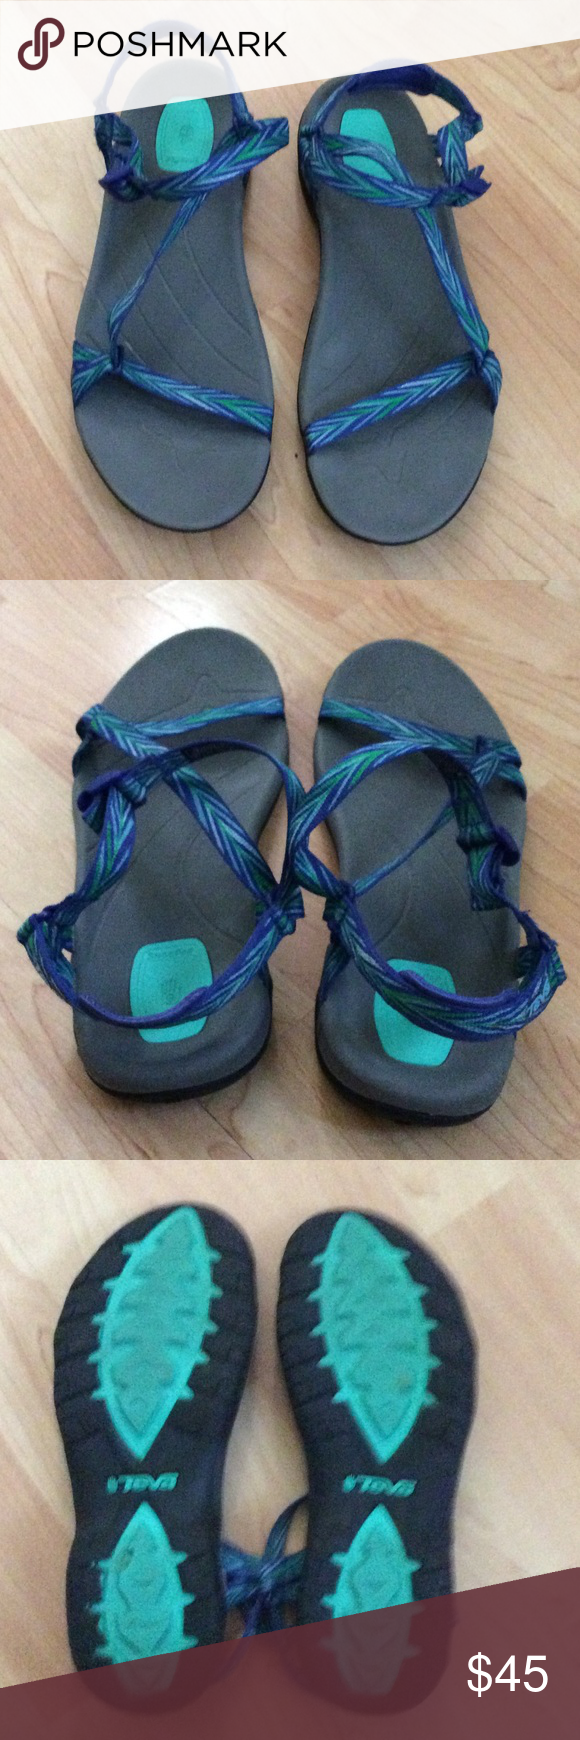 6b2493a02d904 Chacos like sandals Teva sandals like chacos very cute and super comfy!  Size 9 Chacos